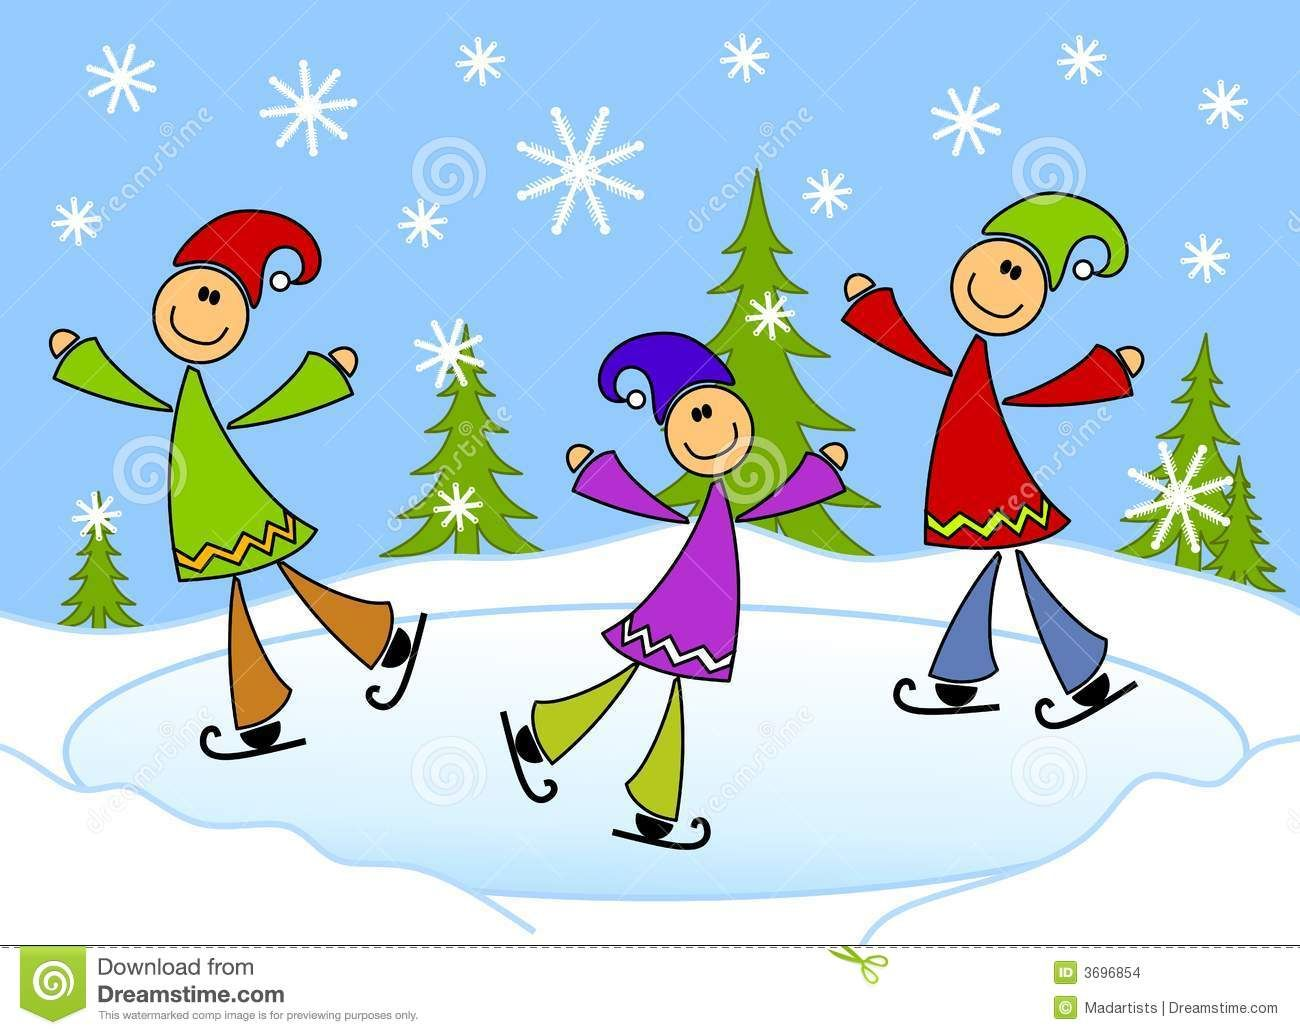 Cartoonish kids ice skating. Winter clipart pond